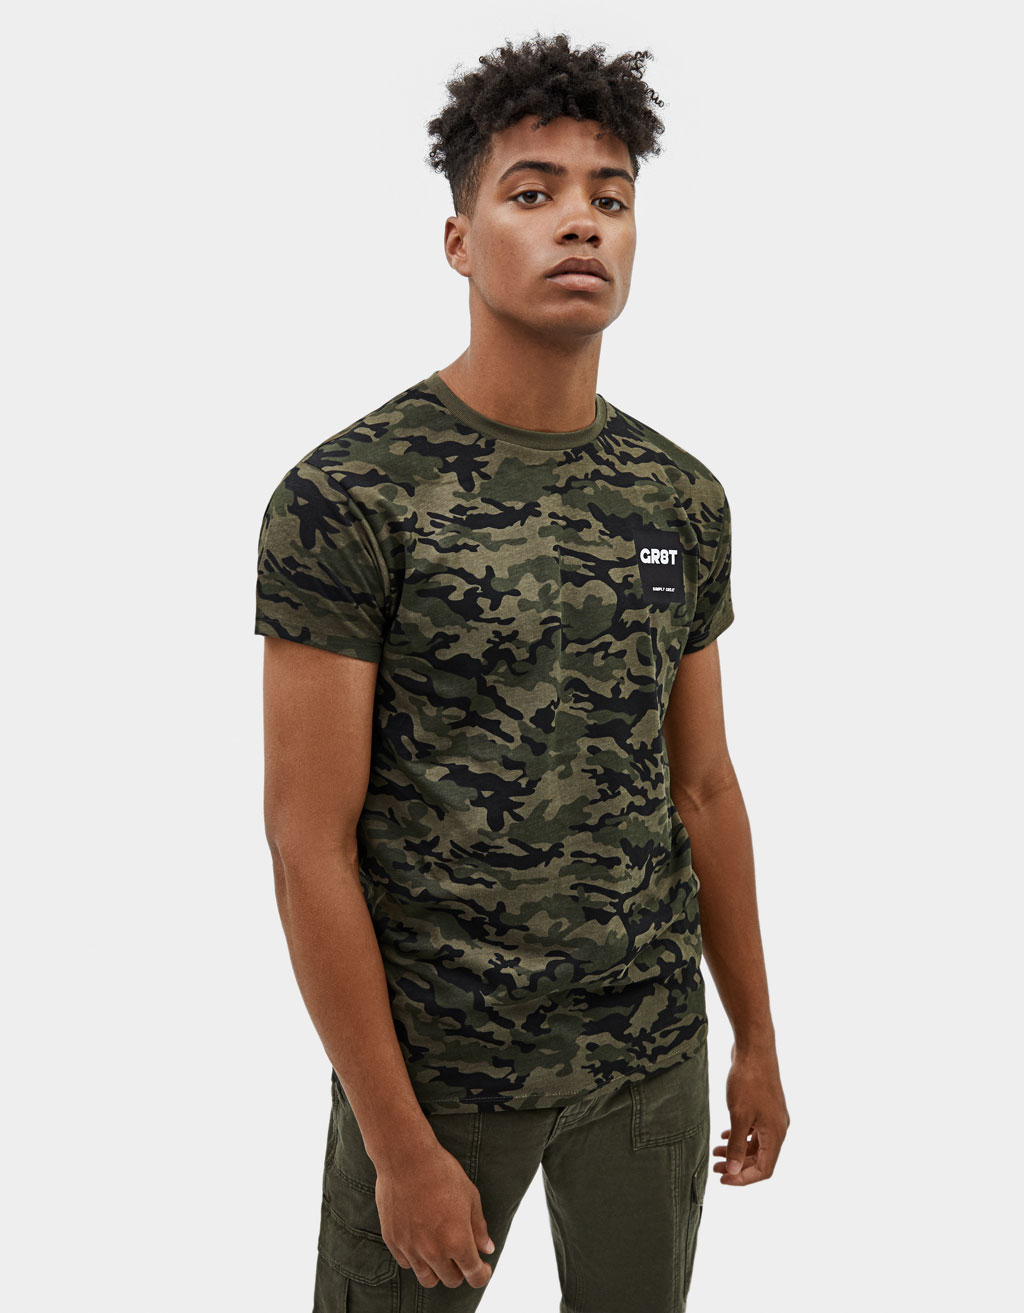 T-shirt Muscle Fit com estampado camuflagem